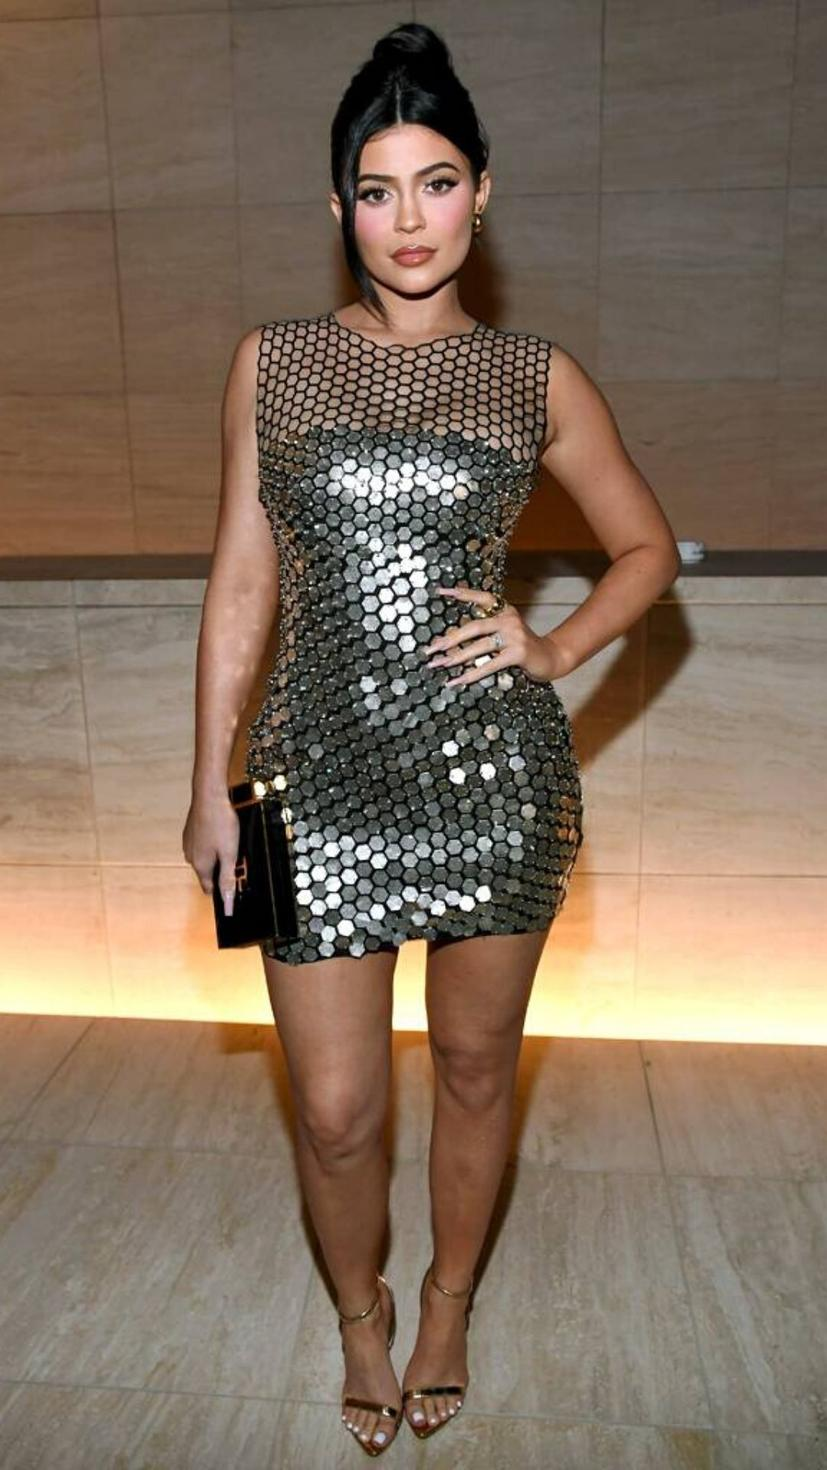 Kylie Jenner attending Tom Ford show wearing his designed silver dress and heels